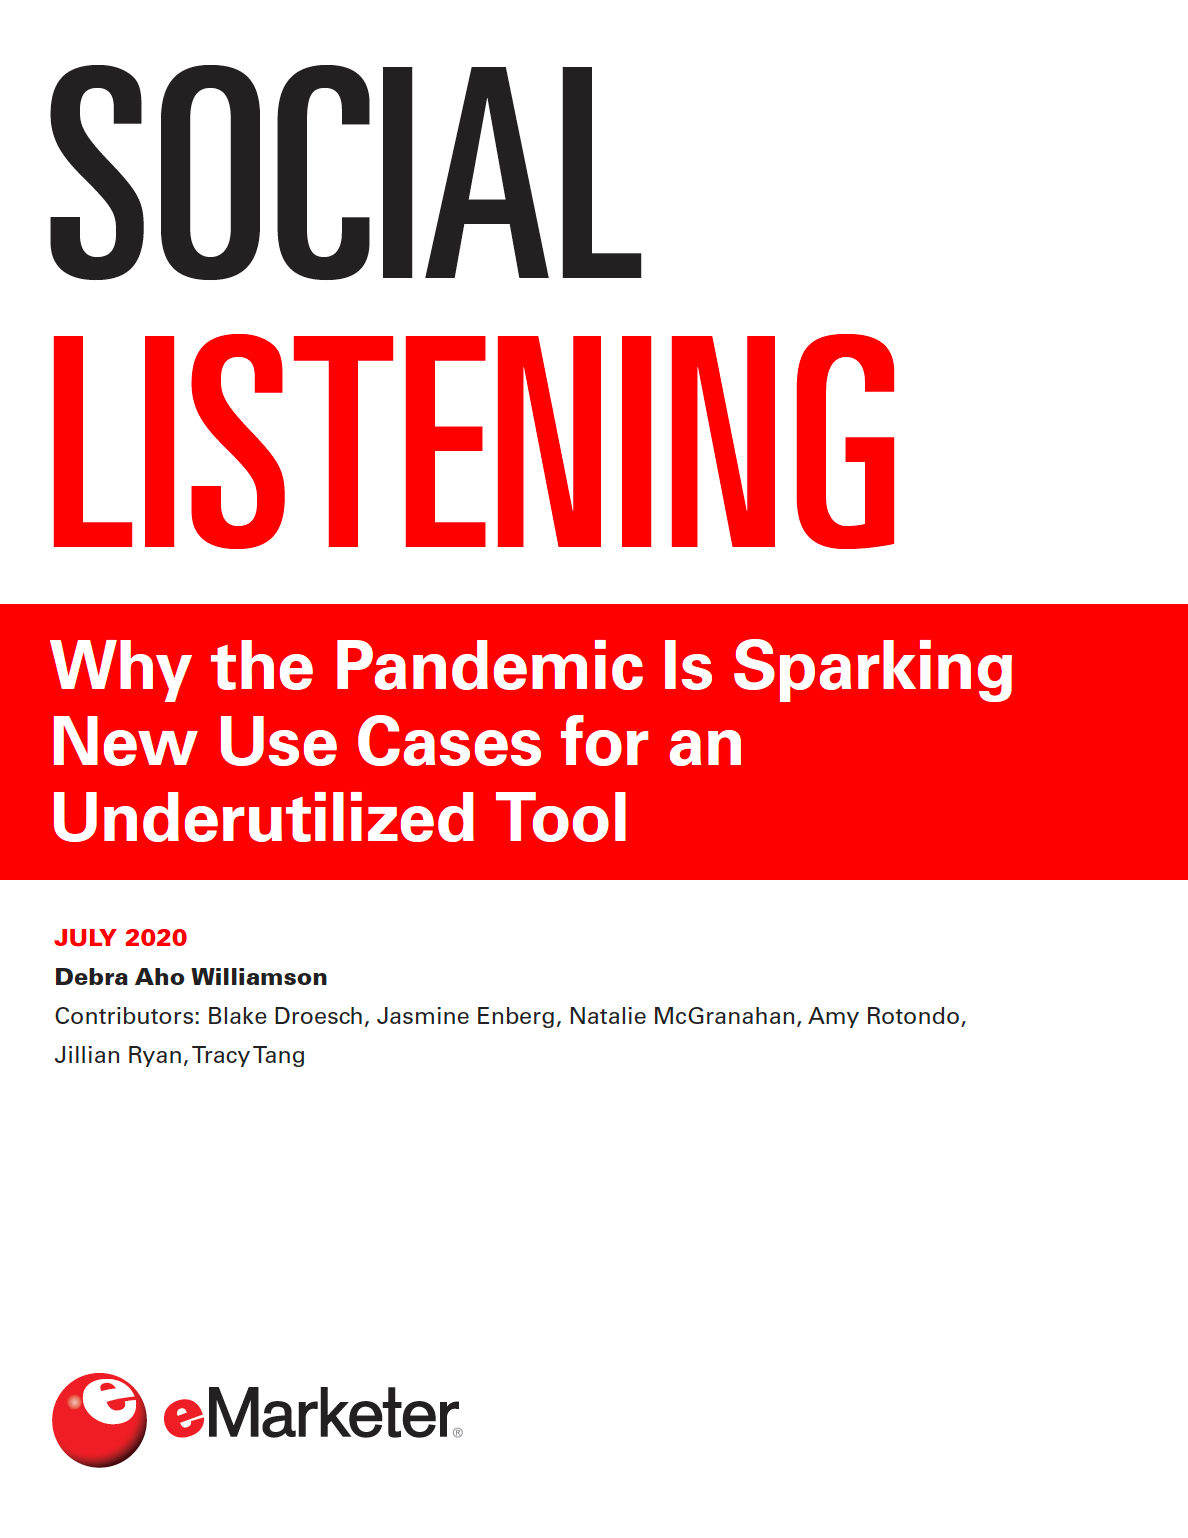 Social Listening: Why the Pandemic is Sparking New Use Cases for an Underutilized Tool